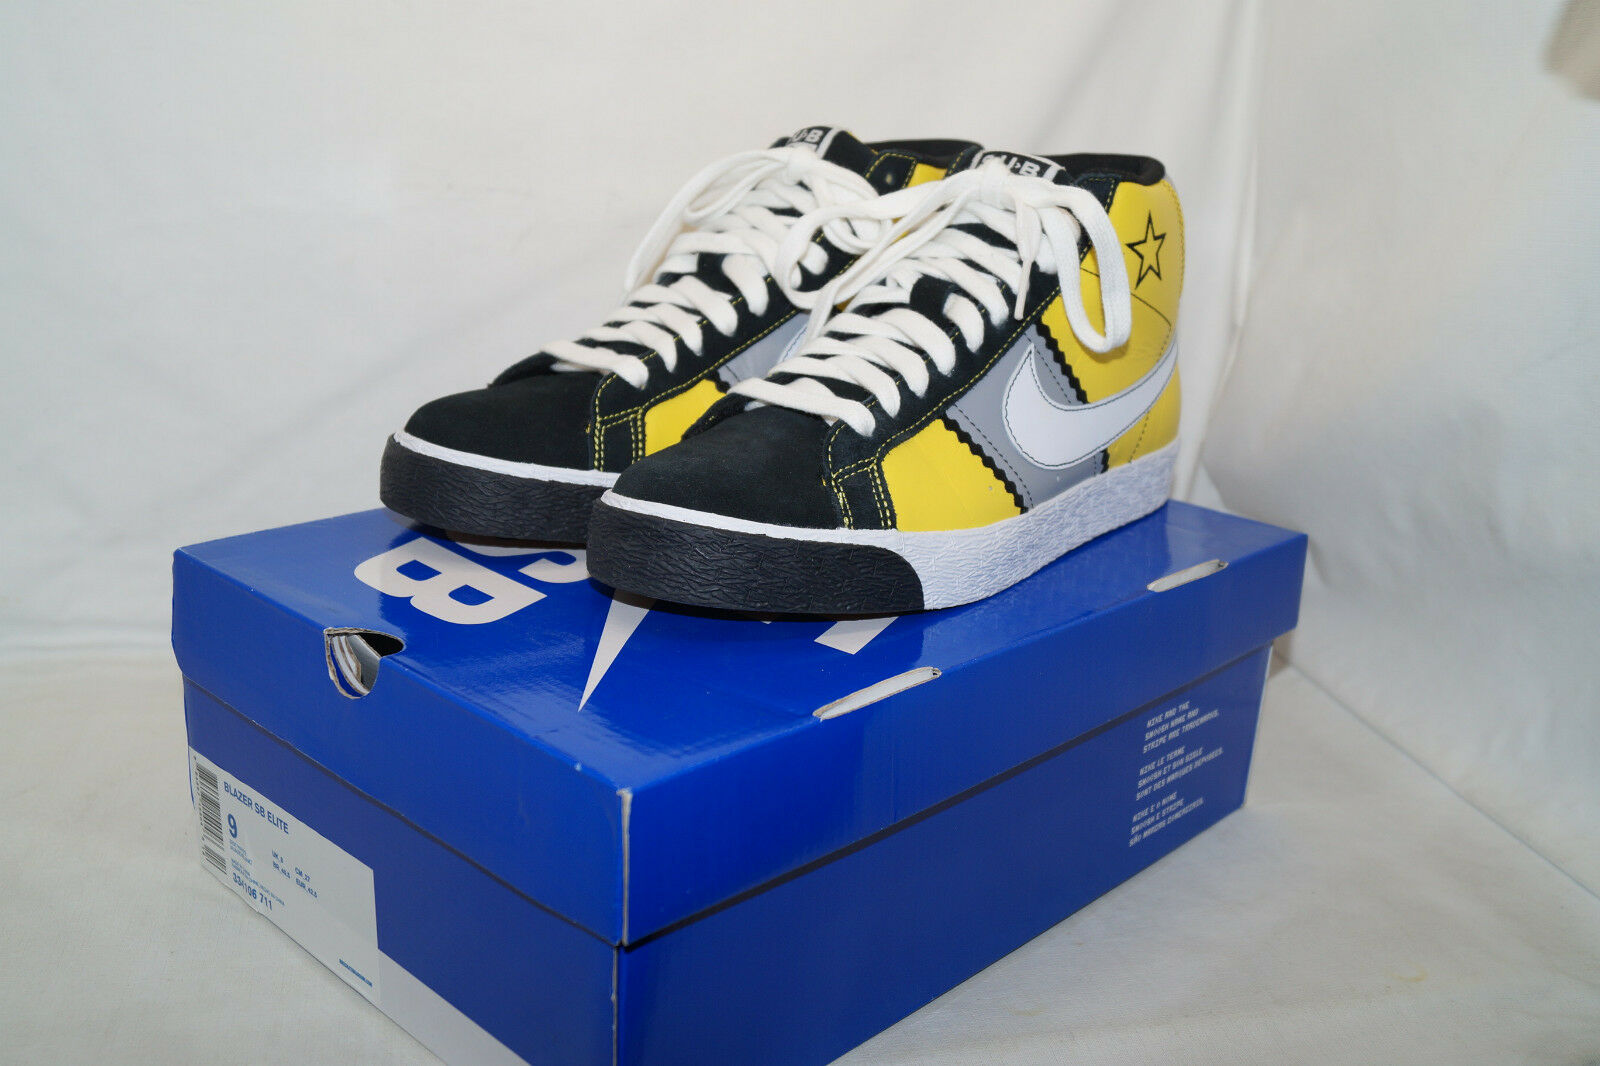 Nike Blazer Sb Elite Sub Pop Taille 42,5 UK 8 Noir Jaune 334106 711 Grunge label